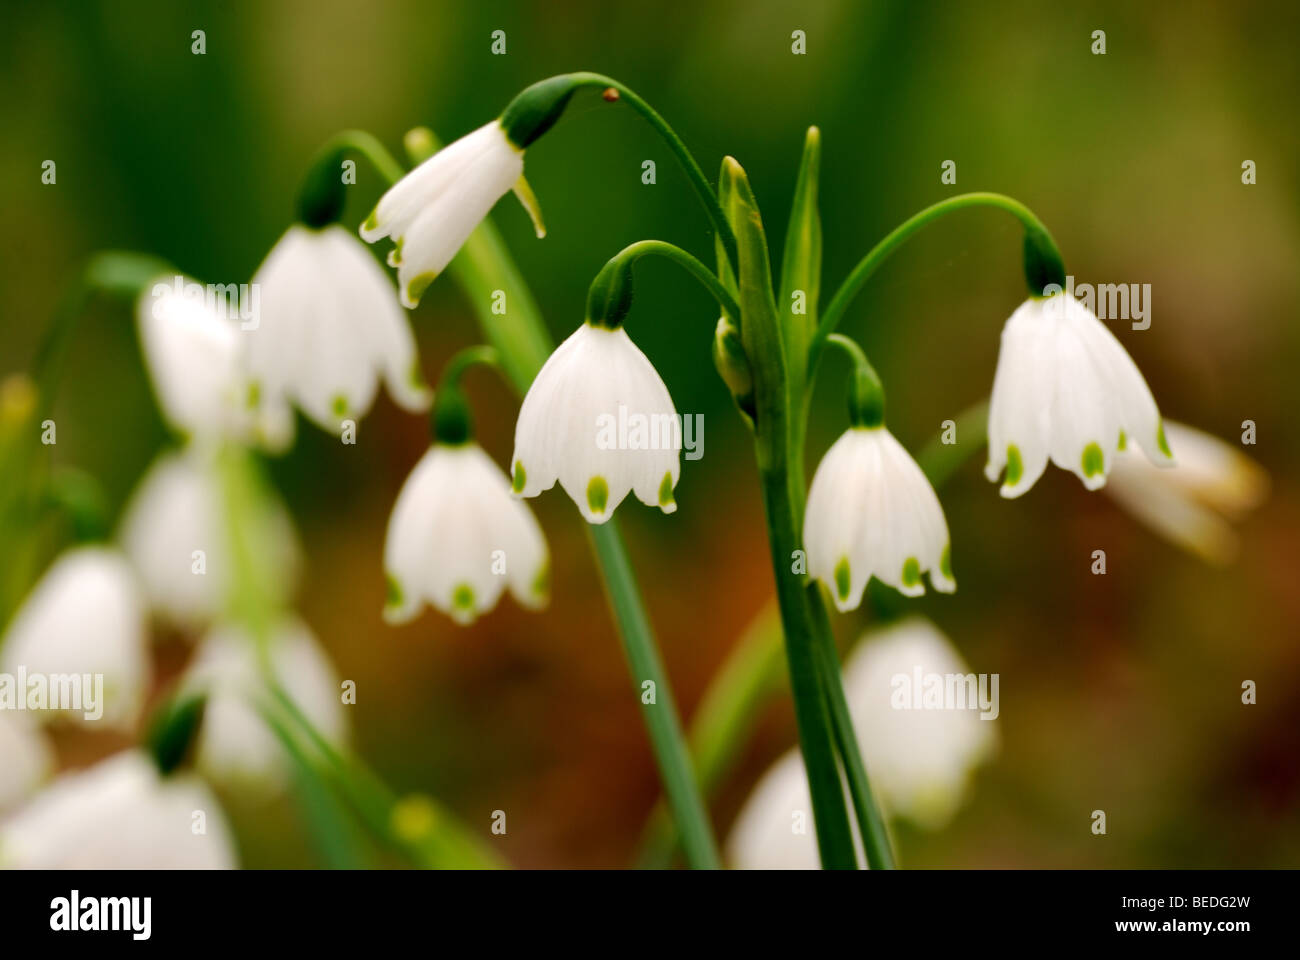 White Bells Flowers Spring Closeup Stock Photo: 26113553 - Alamy